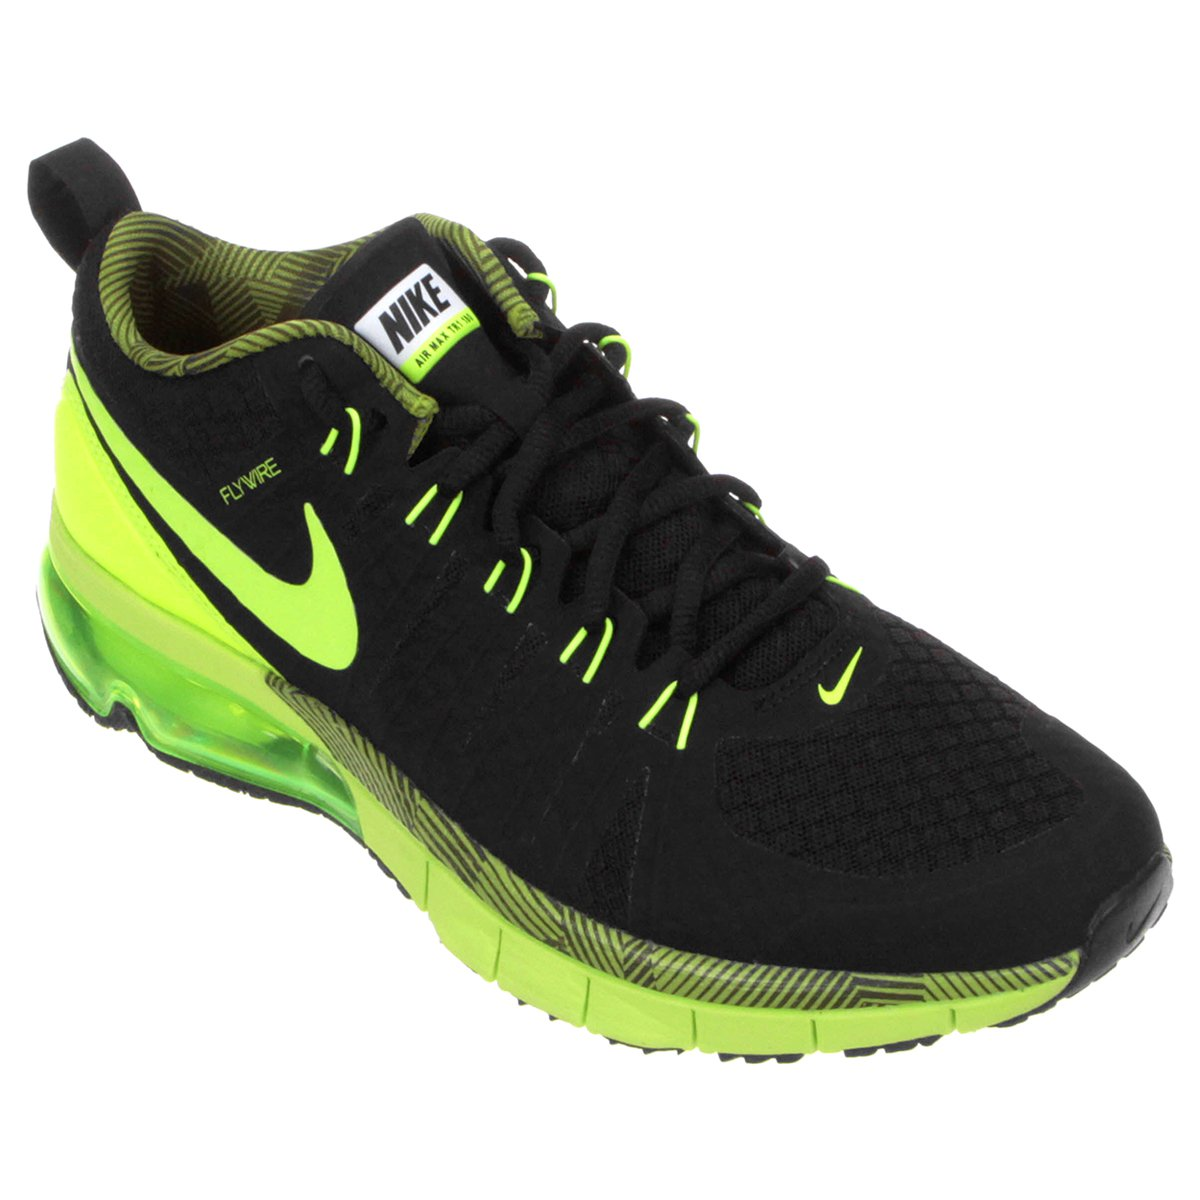 finest selection aab53 cd00b Tênis Nike Air Max Amp TR180 - Compre Agora  Netshoes